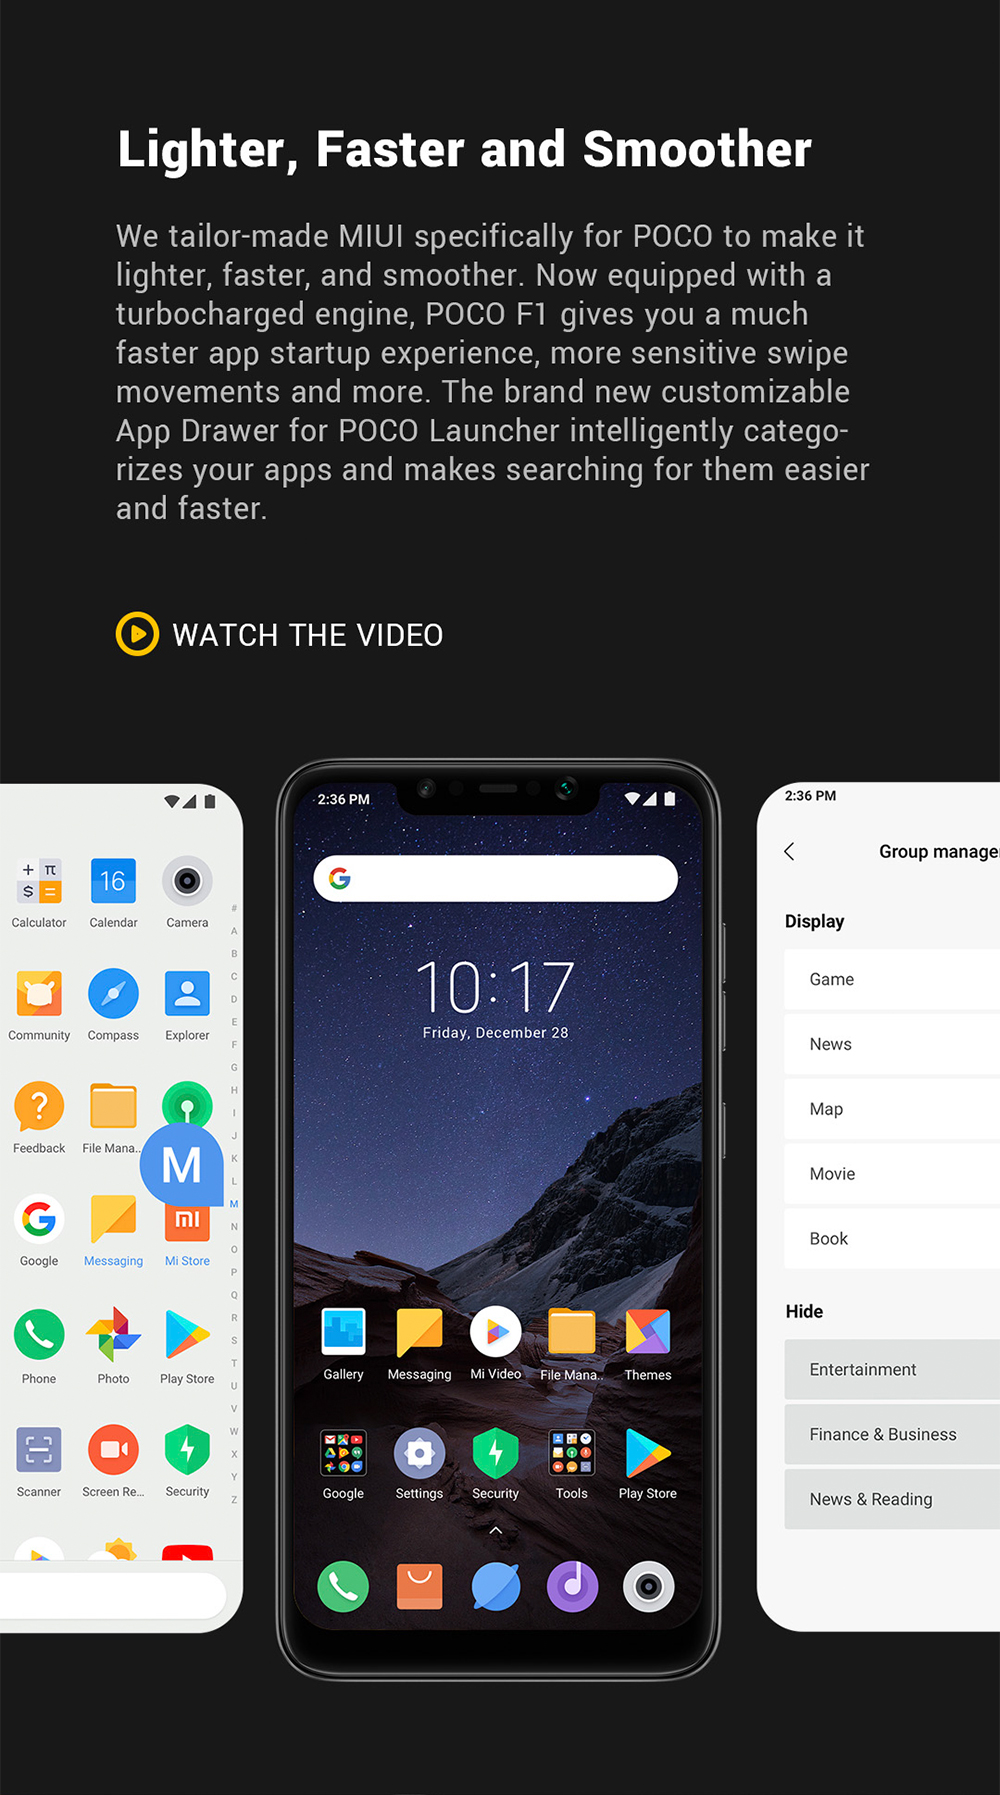 Xiaomi Pocophone F1 4G Phablet 6.18 inch Android 8.1 Qualcomm Snapdragon 845 Octa Core 2.8GHz 6GB RAM 64GB ROM 20.0MP Front Camera Fingerprint Sensor 4000mAh Built-in- Slate Blue